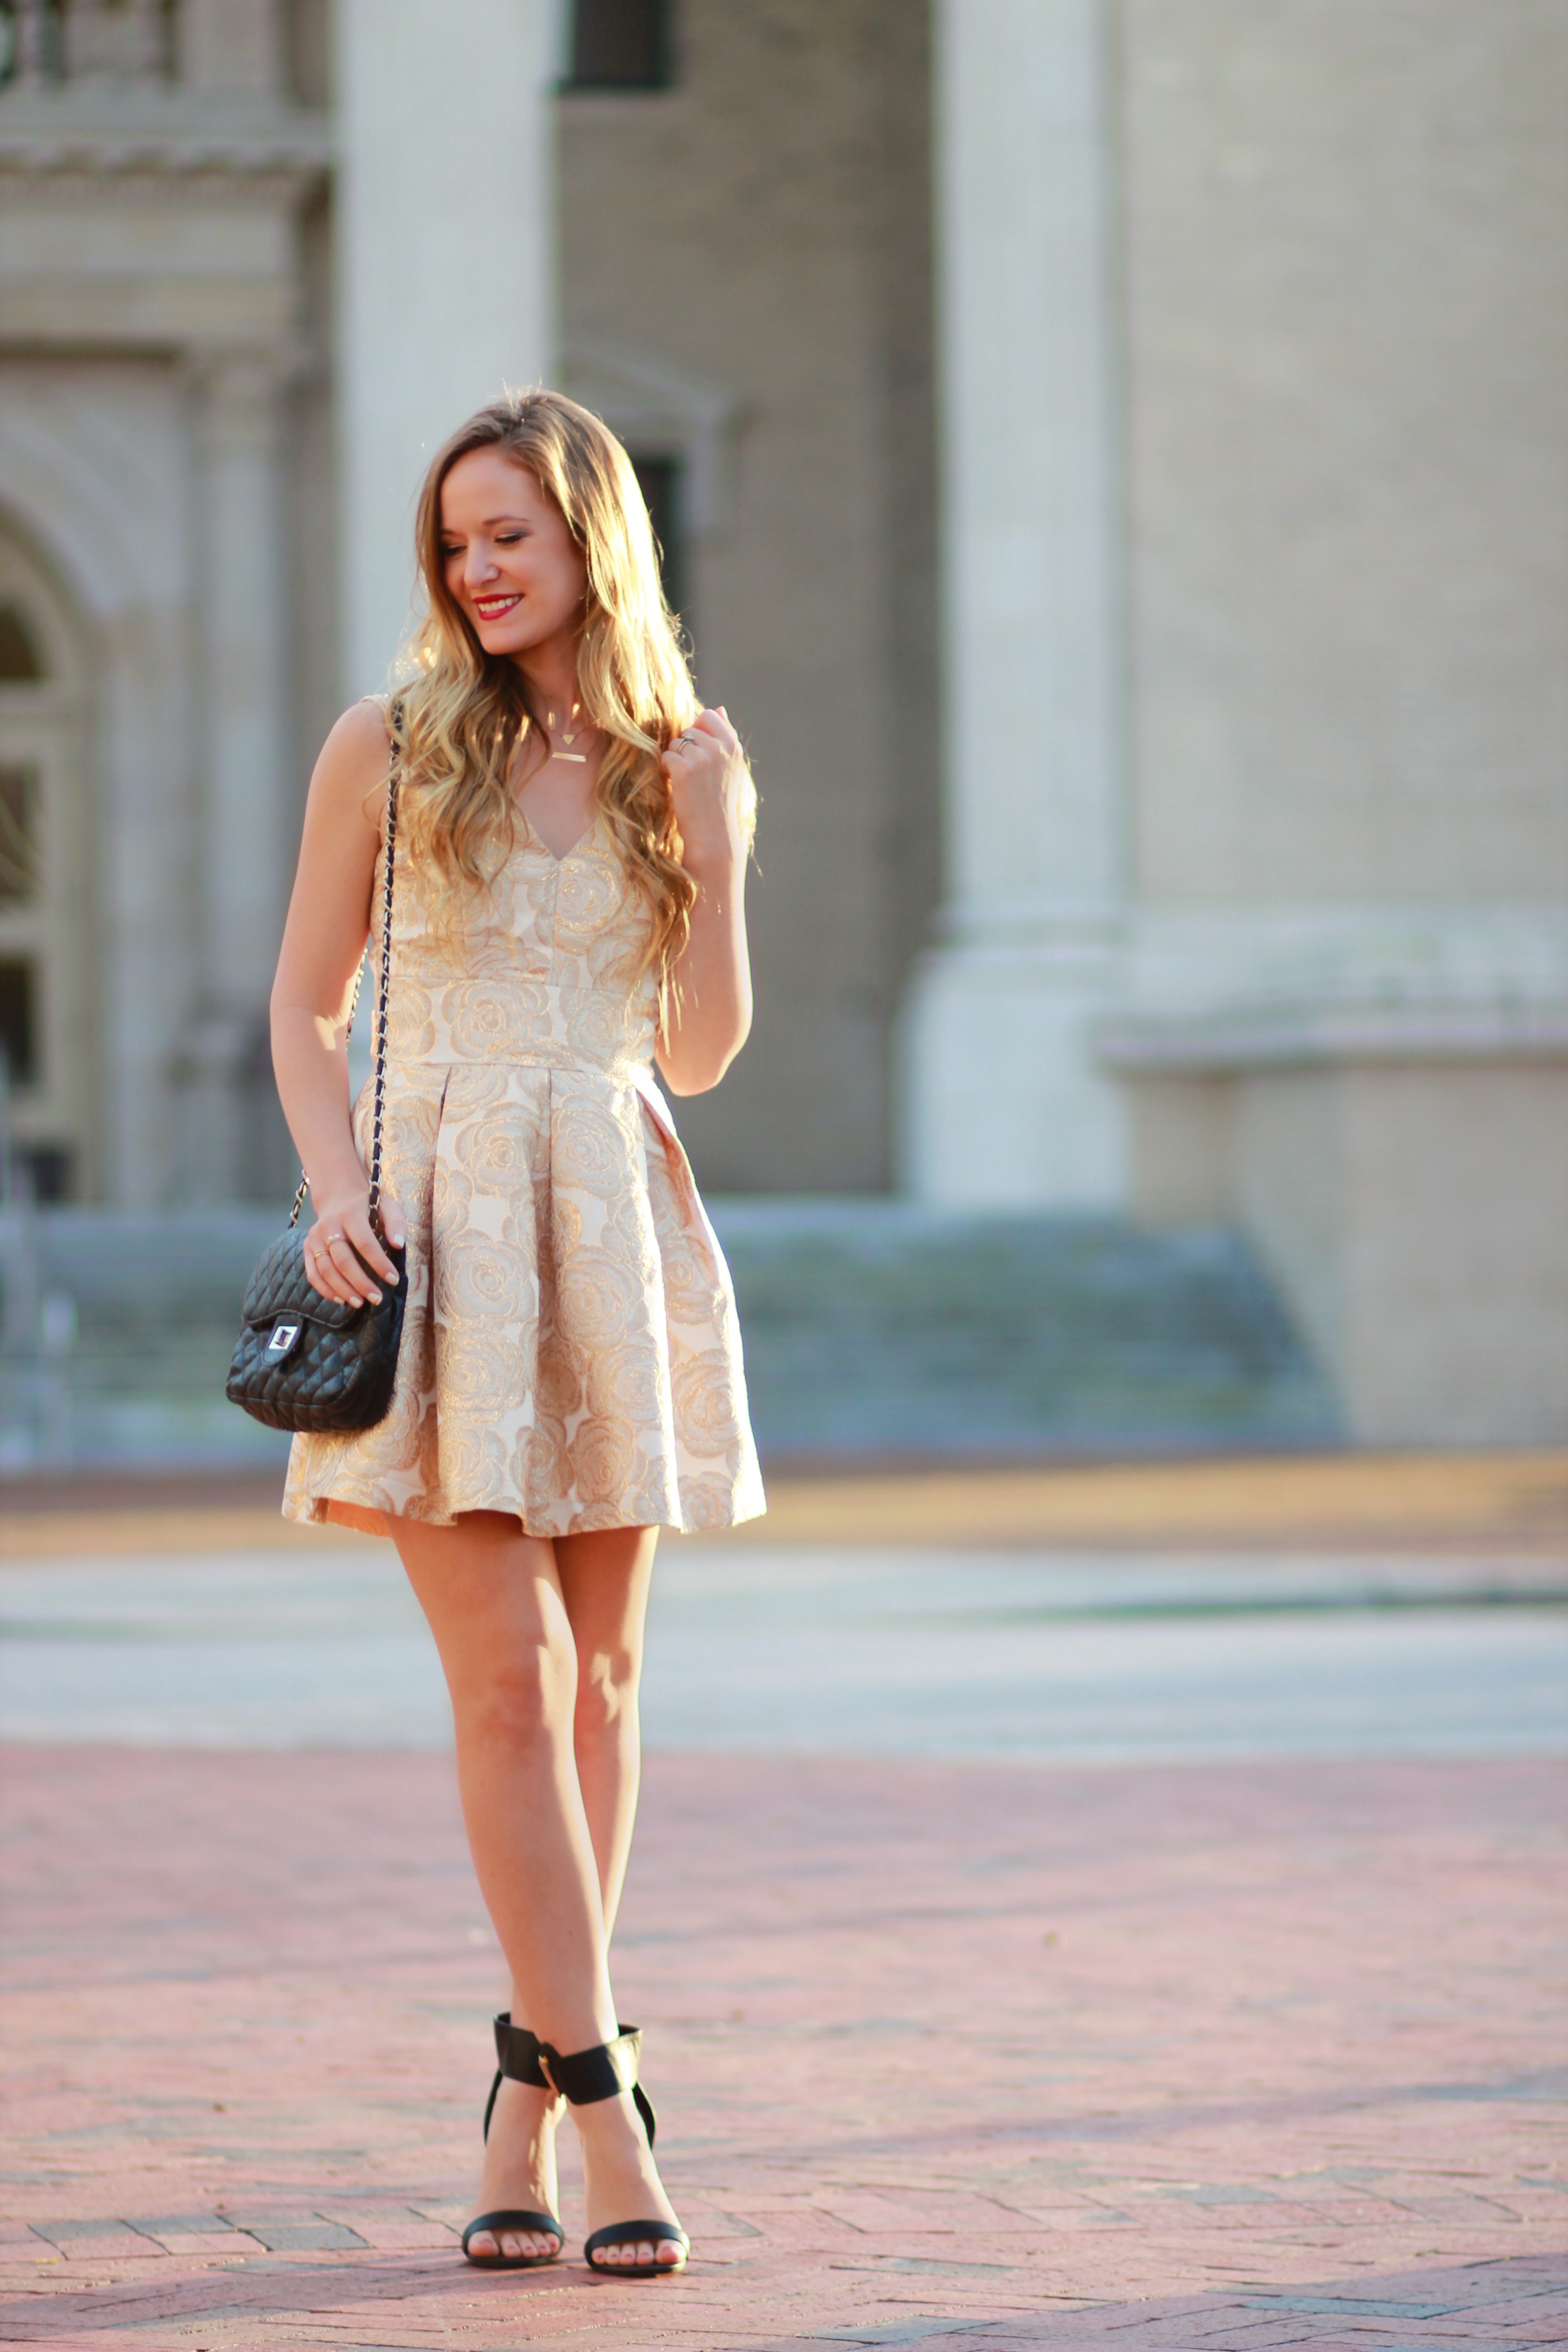 orlando, florida fashion blogger styles trunk up gold floral dress and sugarpair heels for new years outfit inspiration